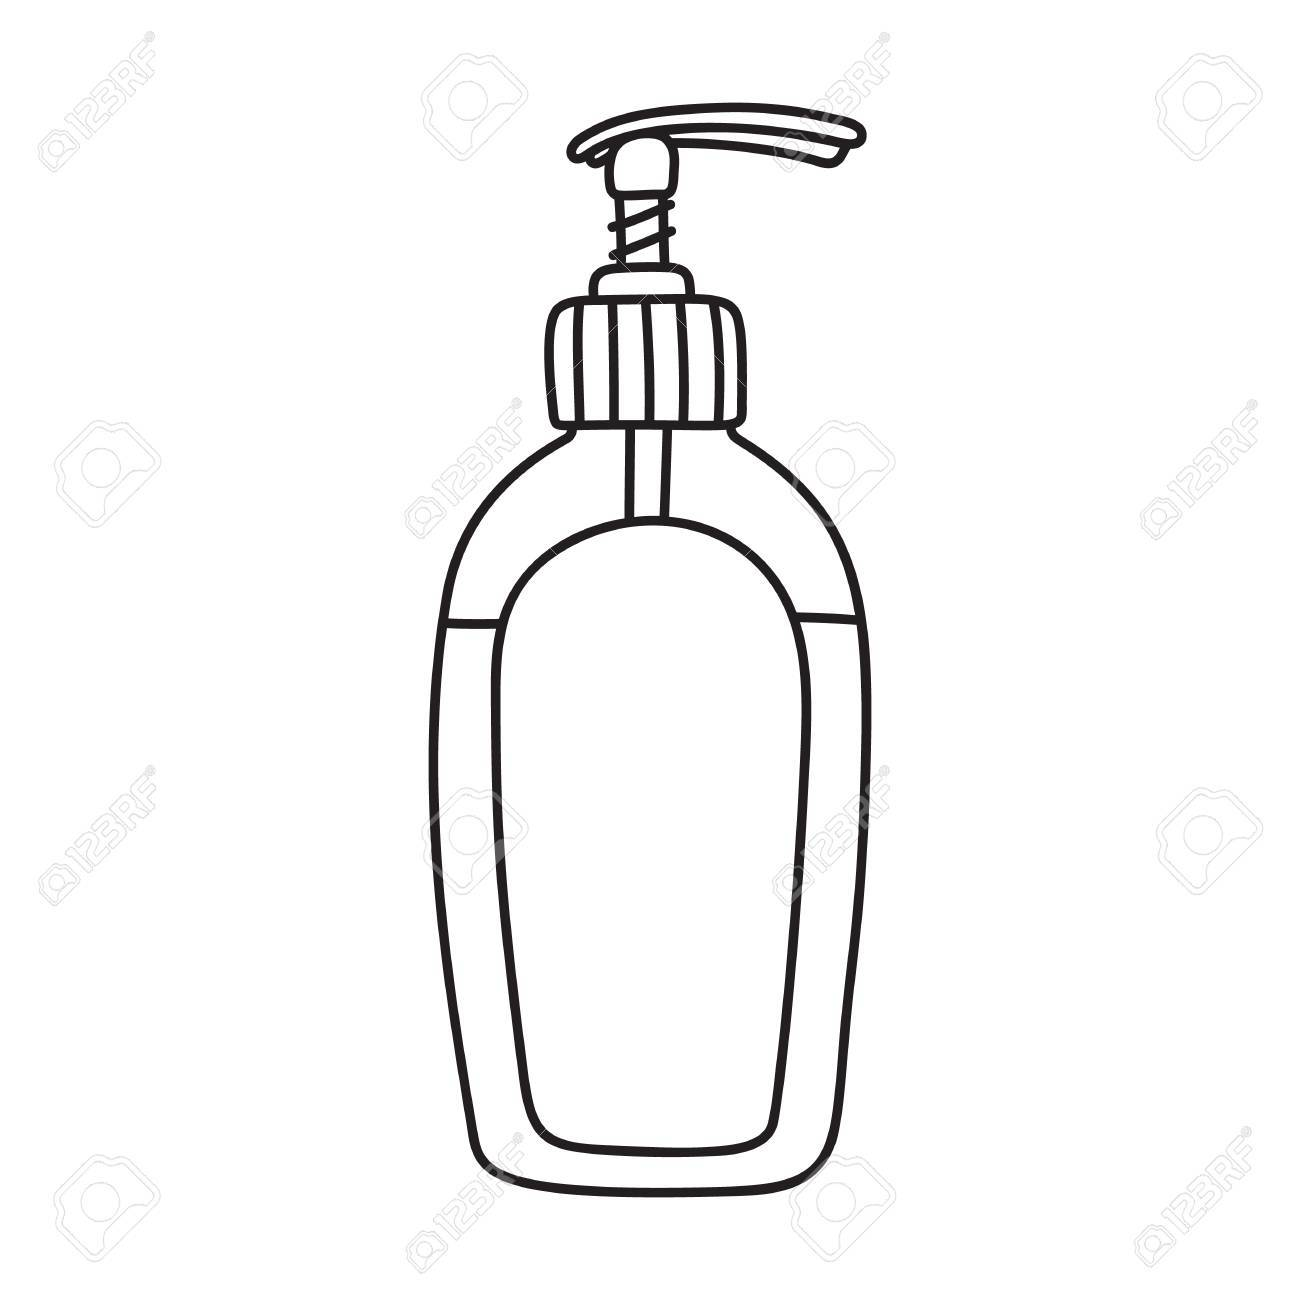 Bottle of soap clipart image black and white stock Soap bottle clipart 2 » Clipart Portal image black and white stock